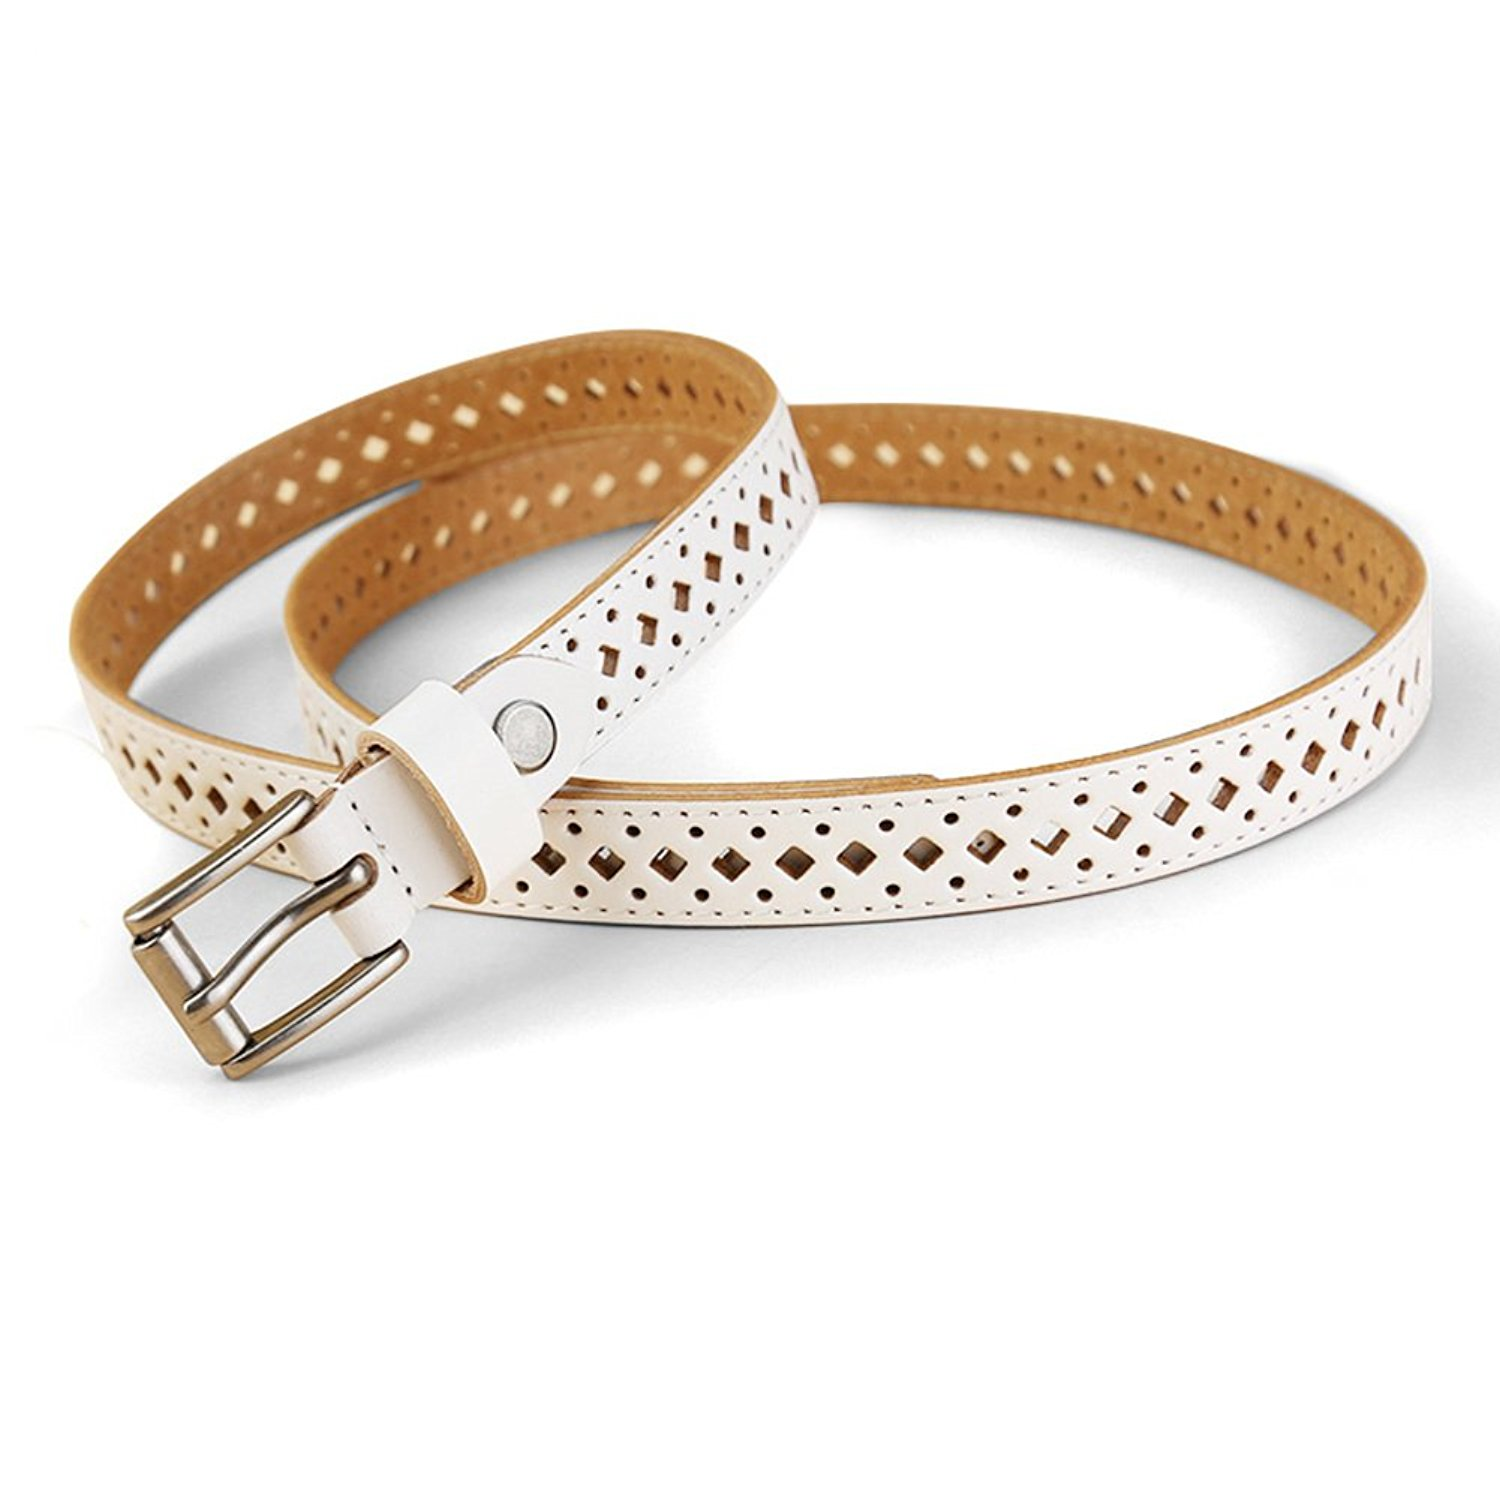 Leather Lady Decorative Narrow Band Belt,Service Dress Simple All-purpose Girdle